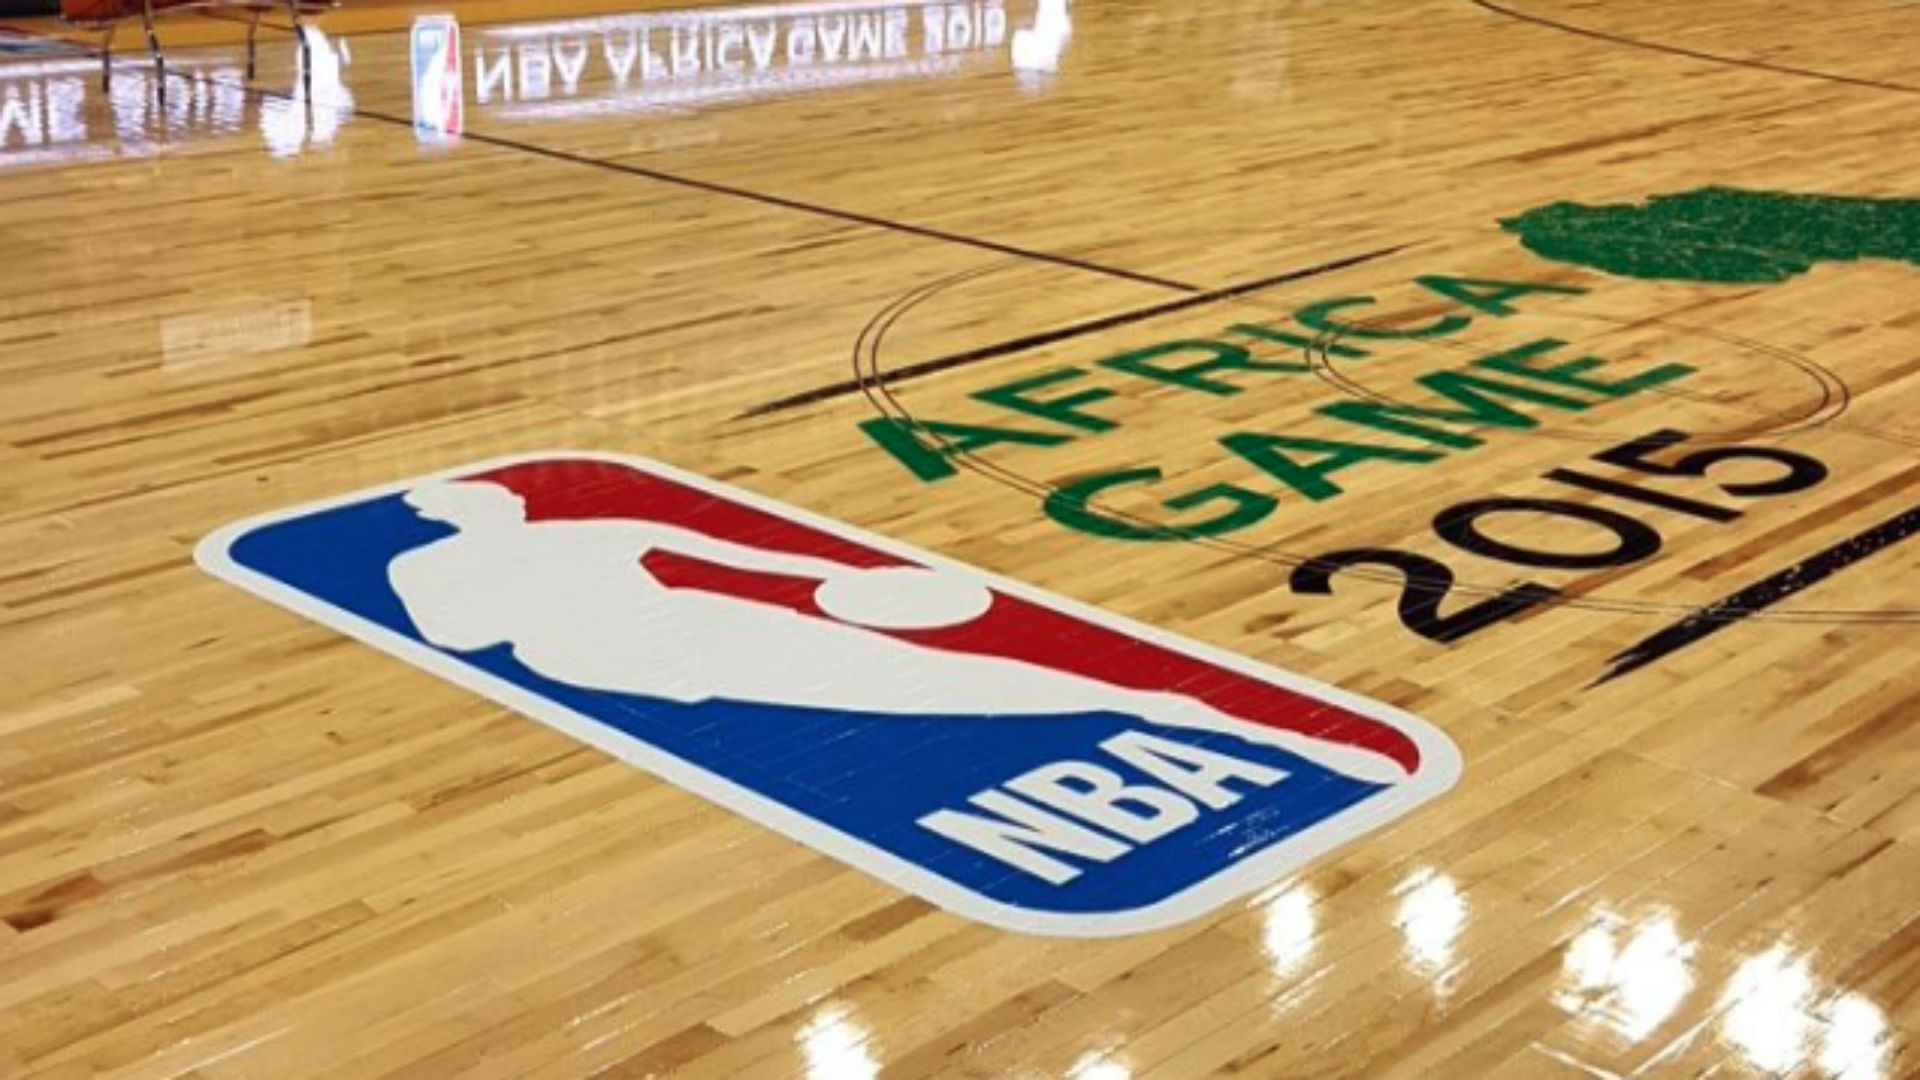 NBA Africa Game: Time, date, rosters, TV channel, streaming information